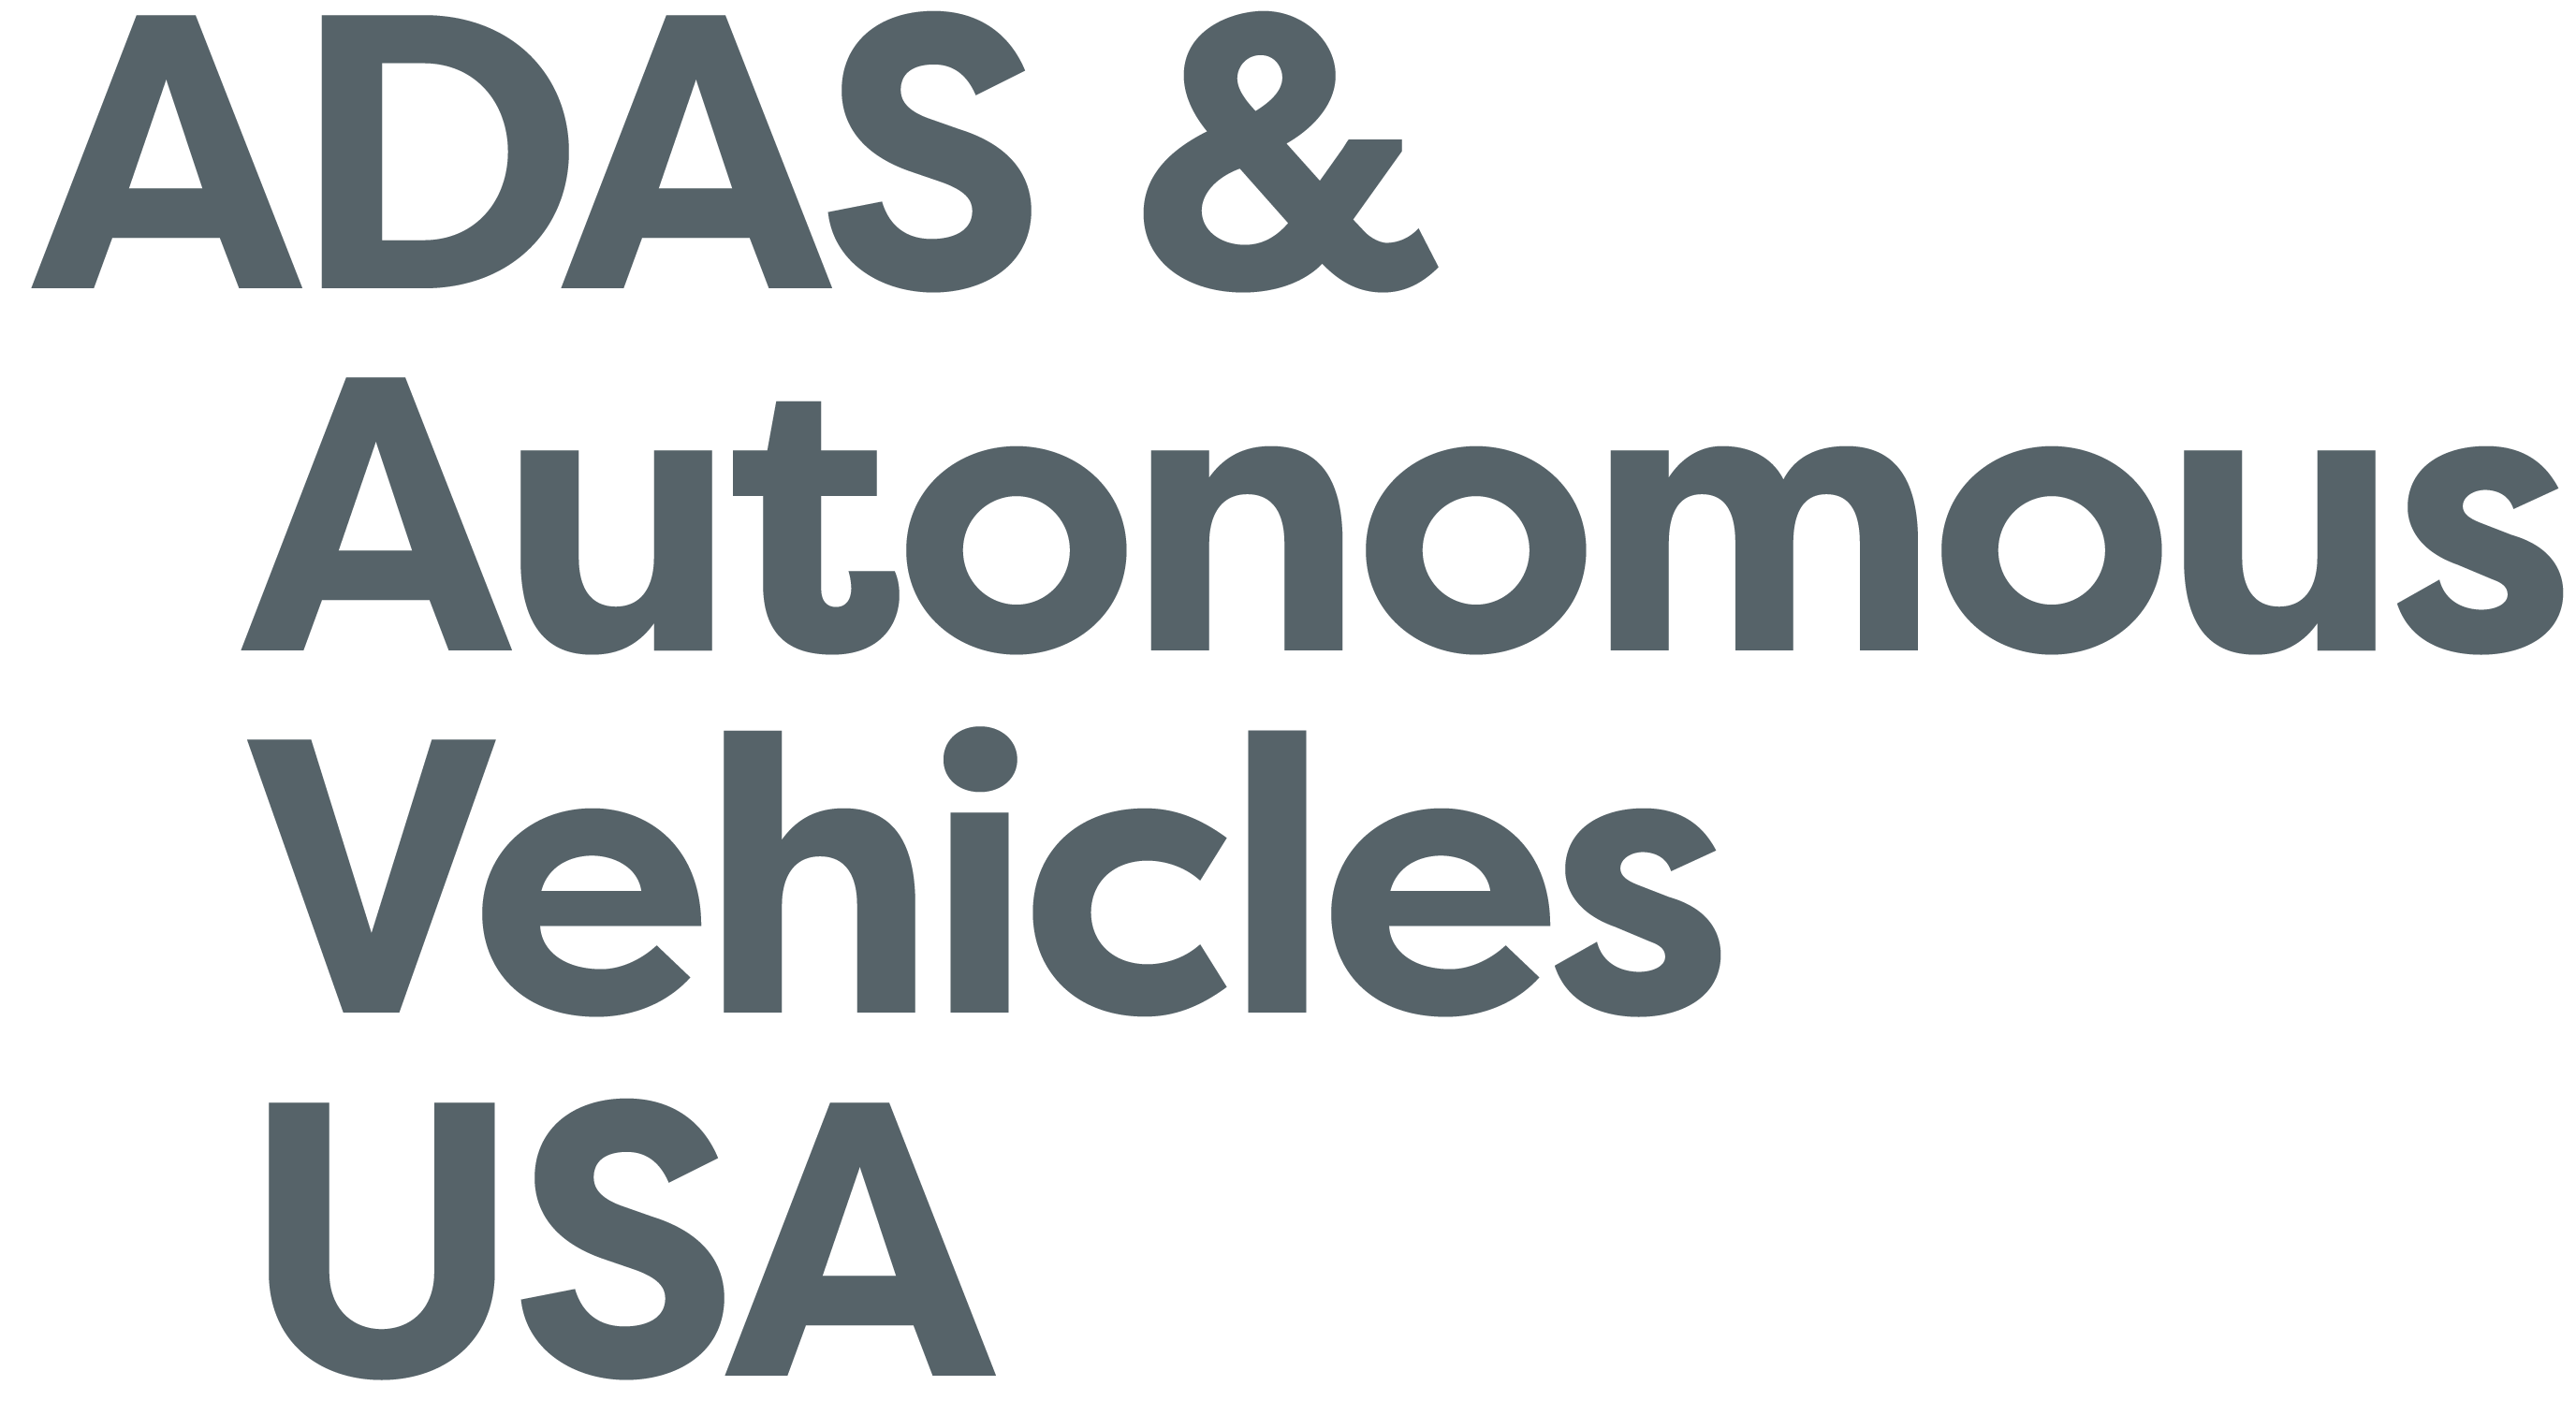 ADAS & Autonomous Vehicles USA Conference 2019